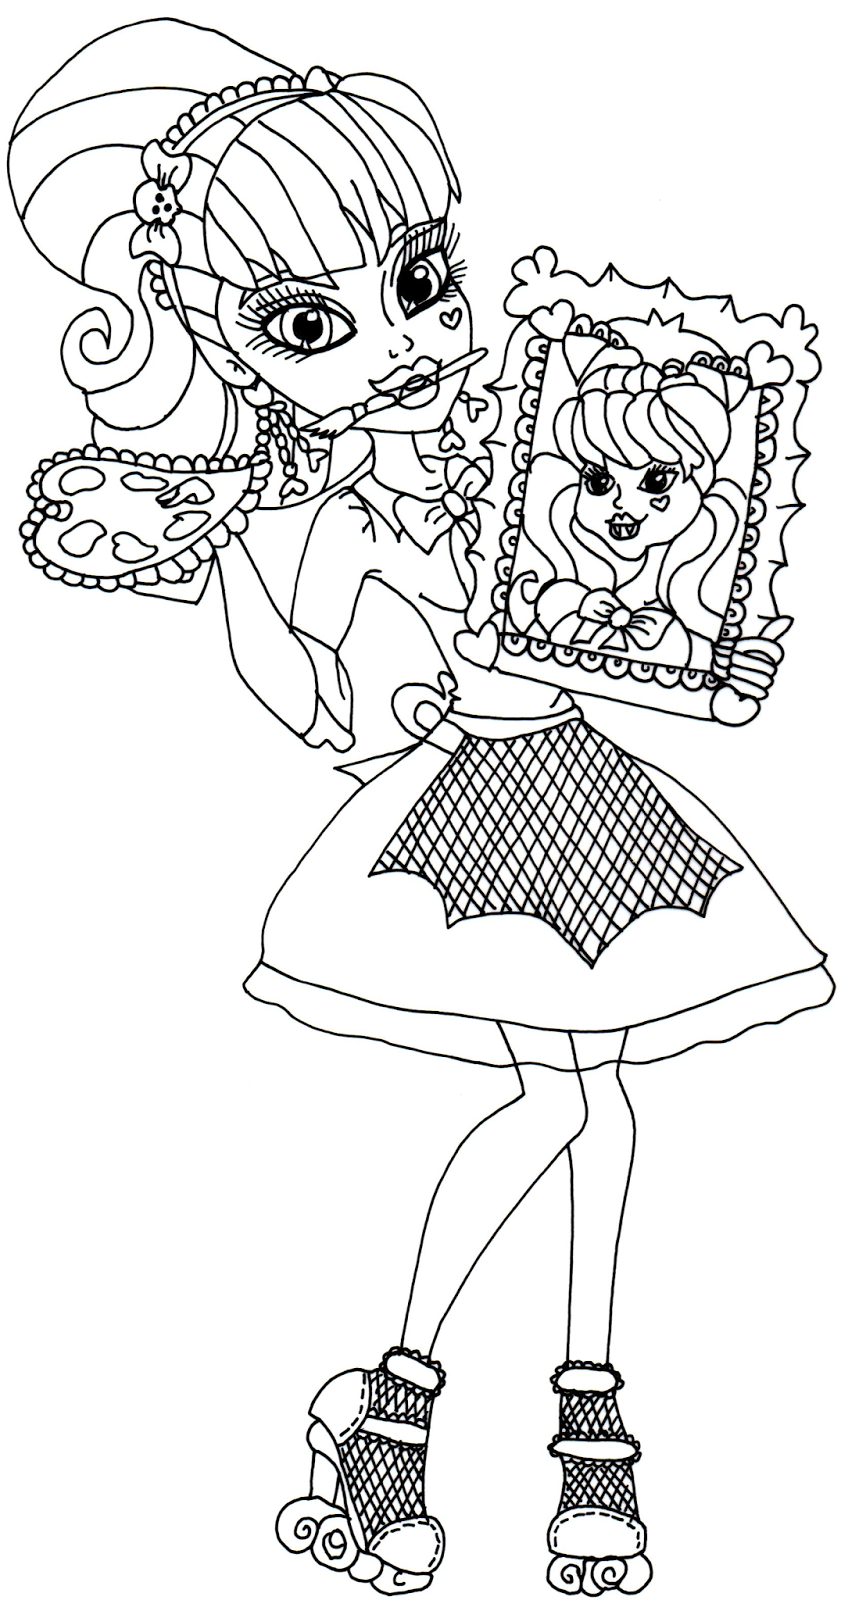 Free Printable Monster High Coloring Pages: Draculaura Art